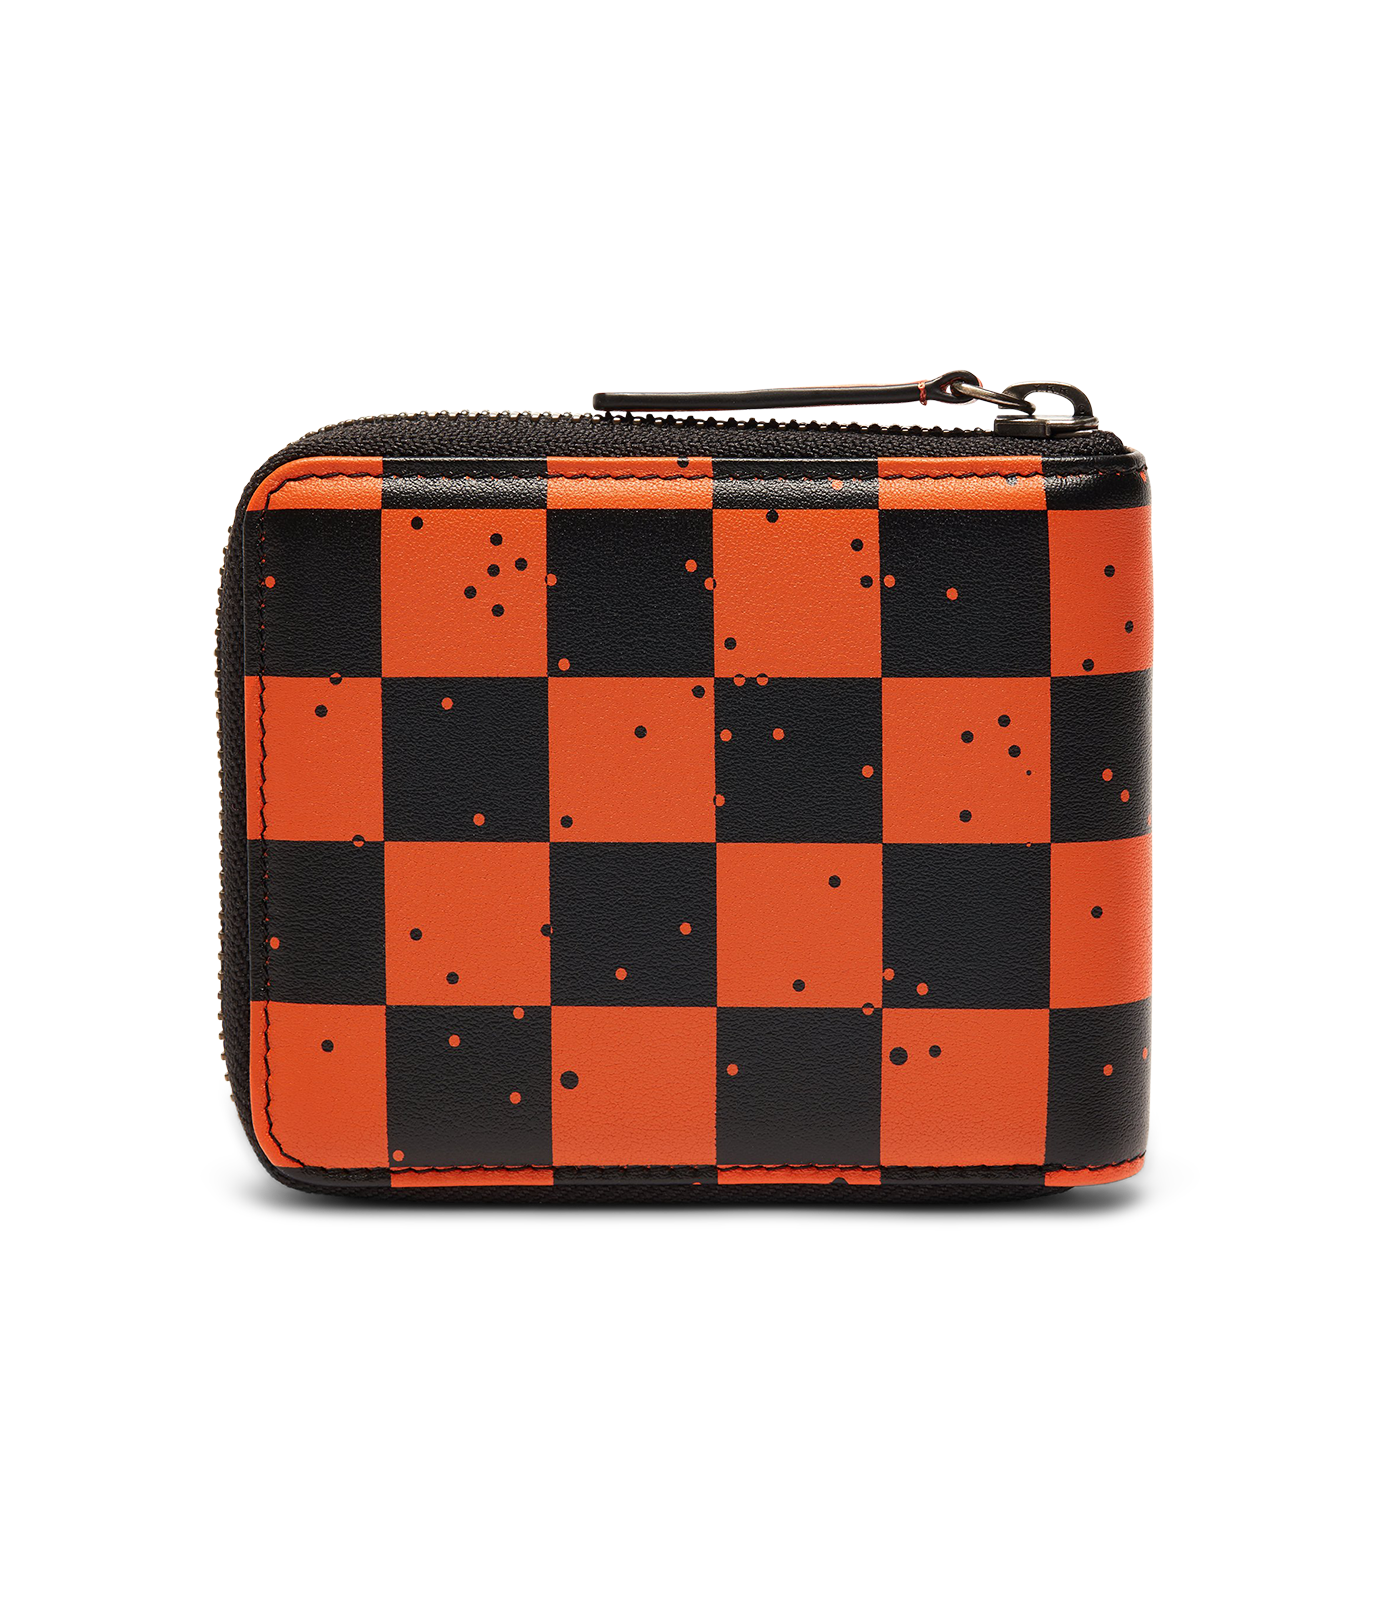 SPACE CHECK LEATHER ZIP WALLET - ORANGE